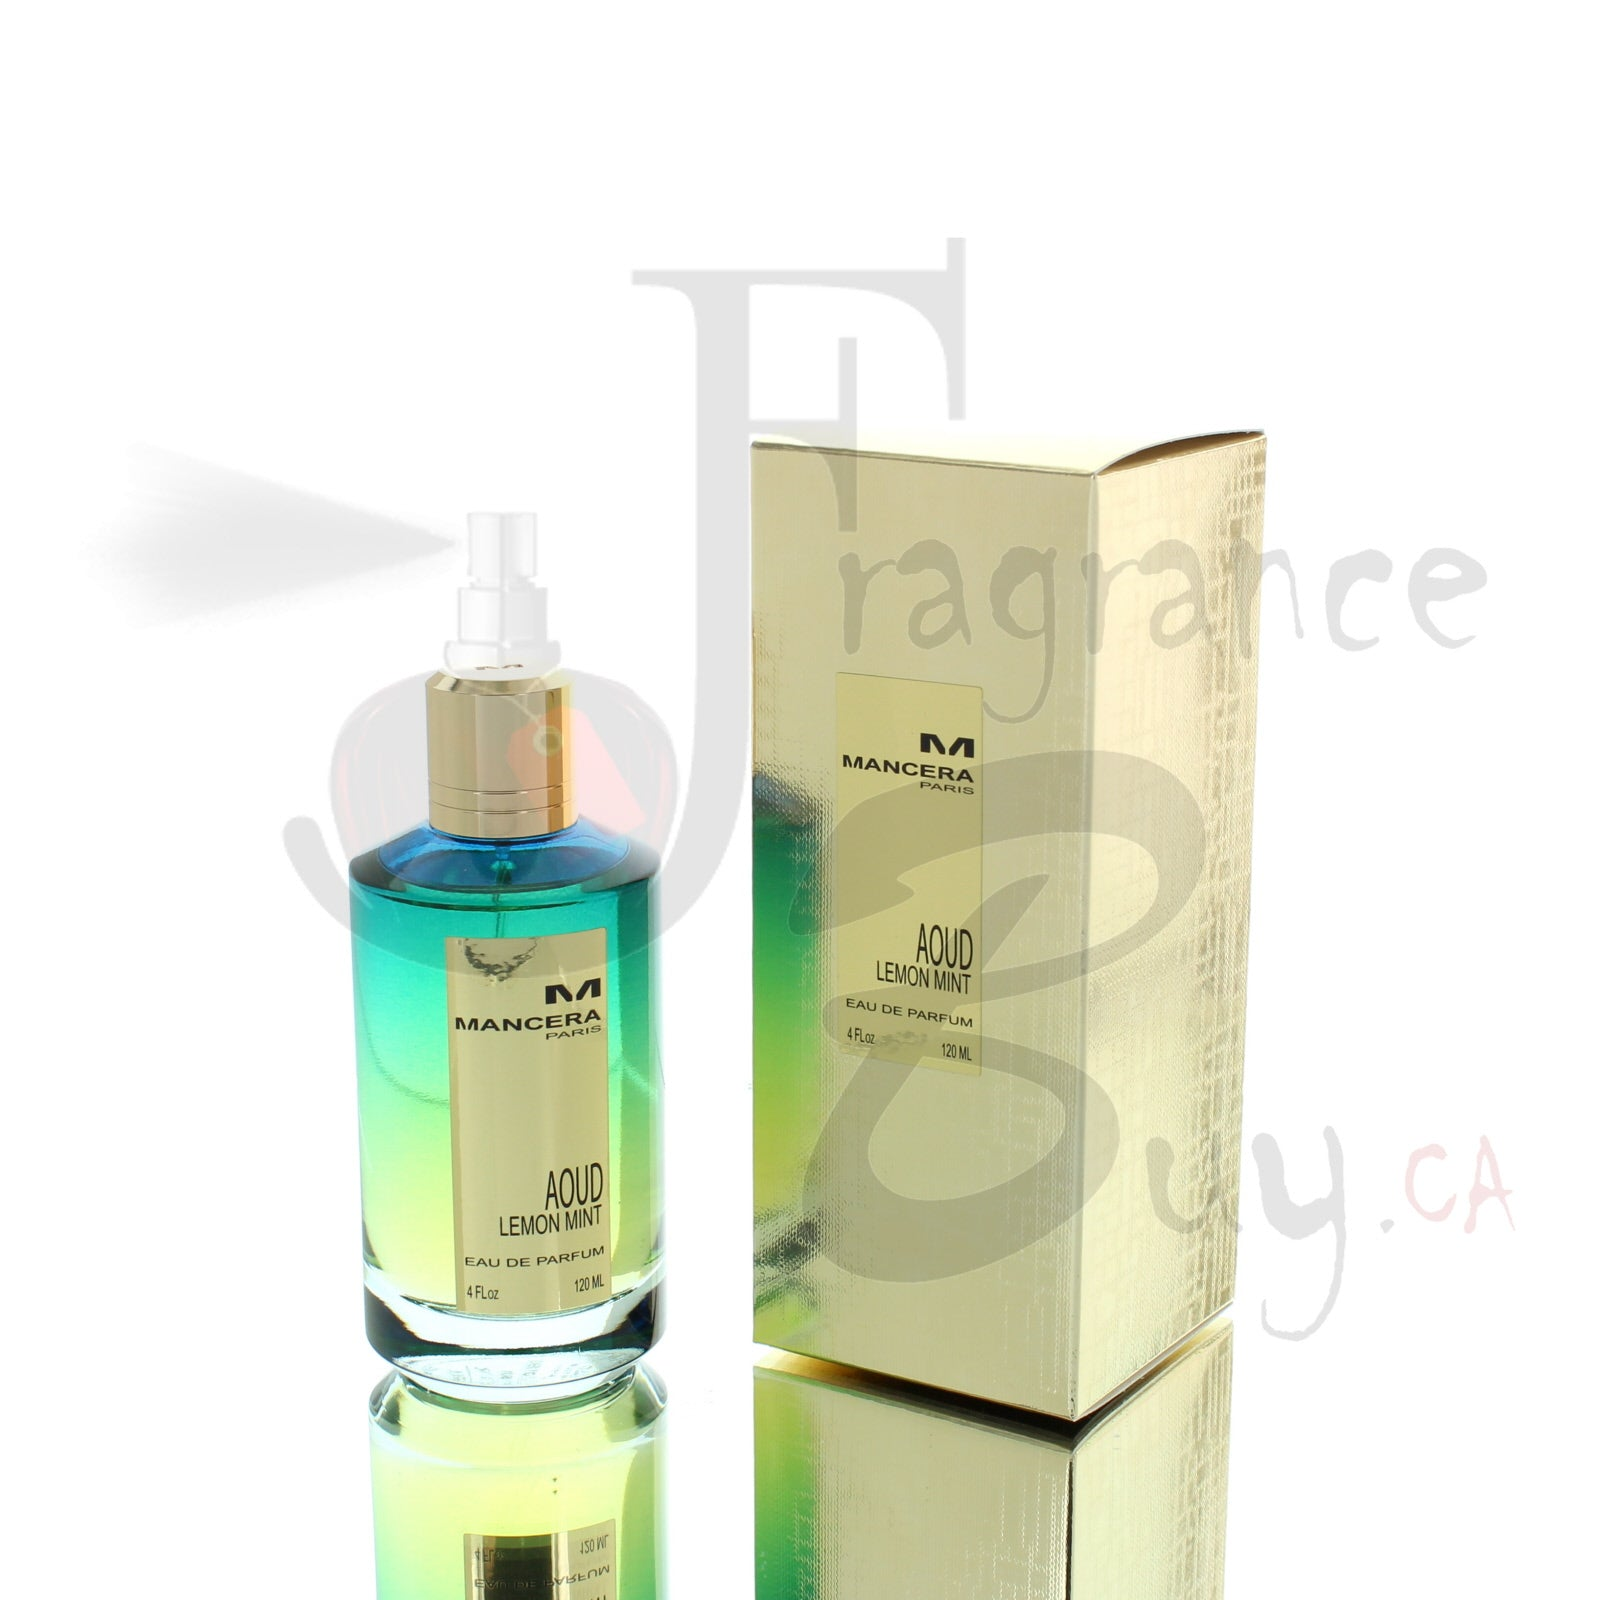 Mancera Aoud Lemon Mint For Man/Woman